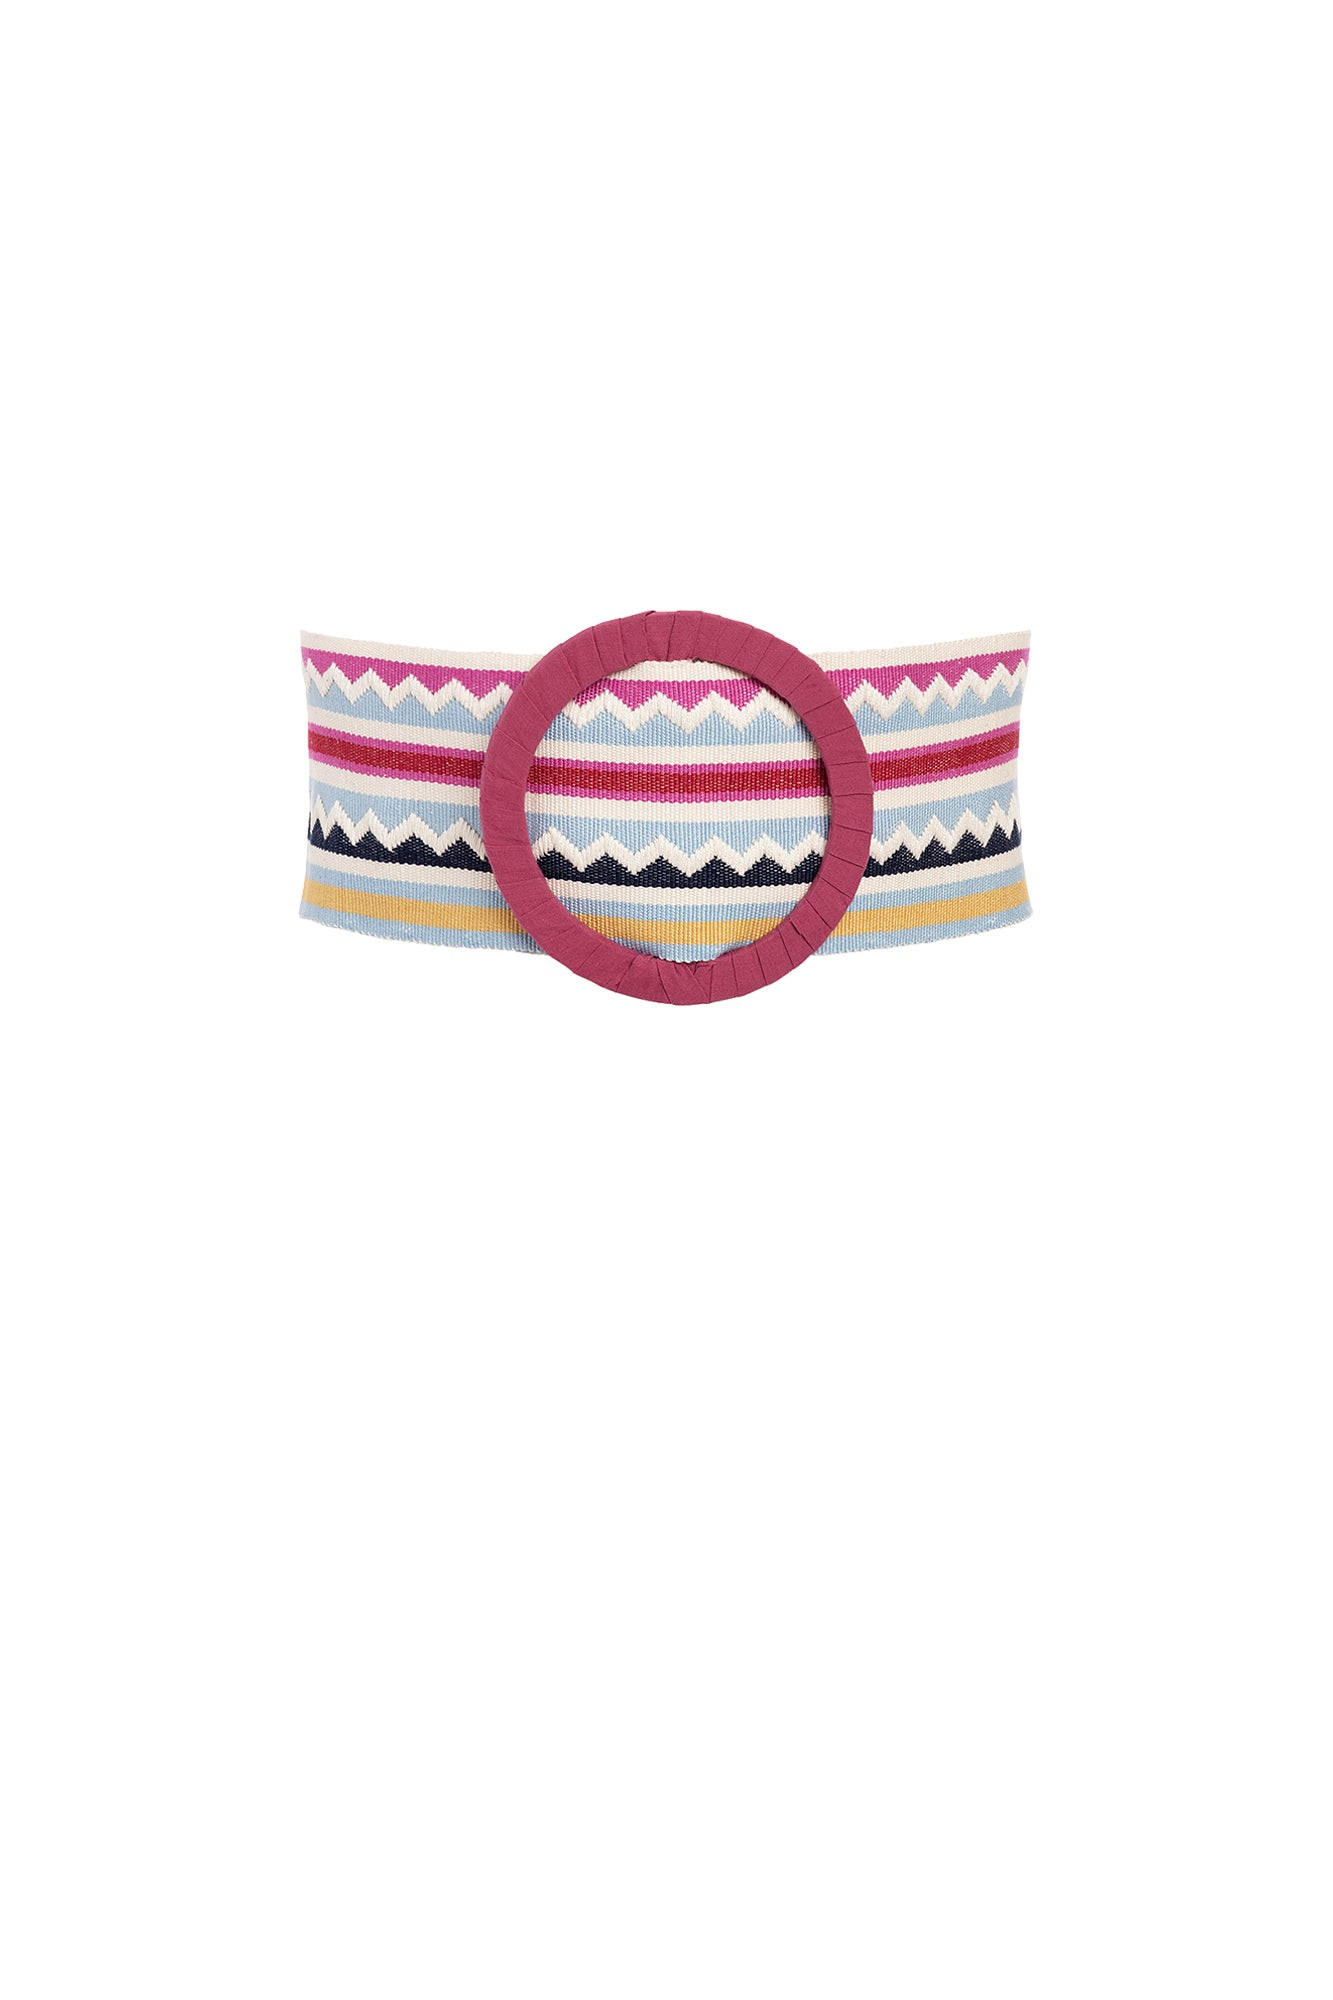 Carolina K Alicia Belt Multi Triangles